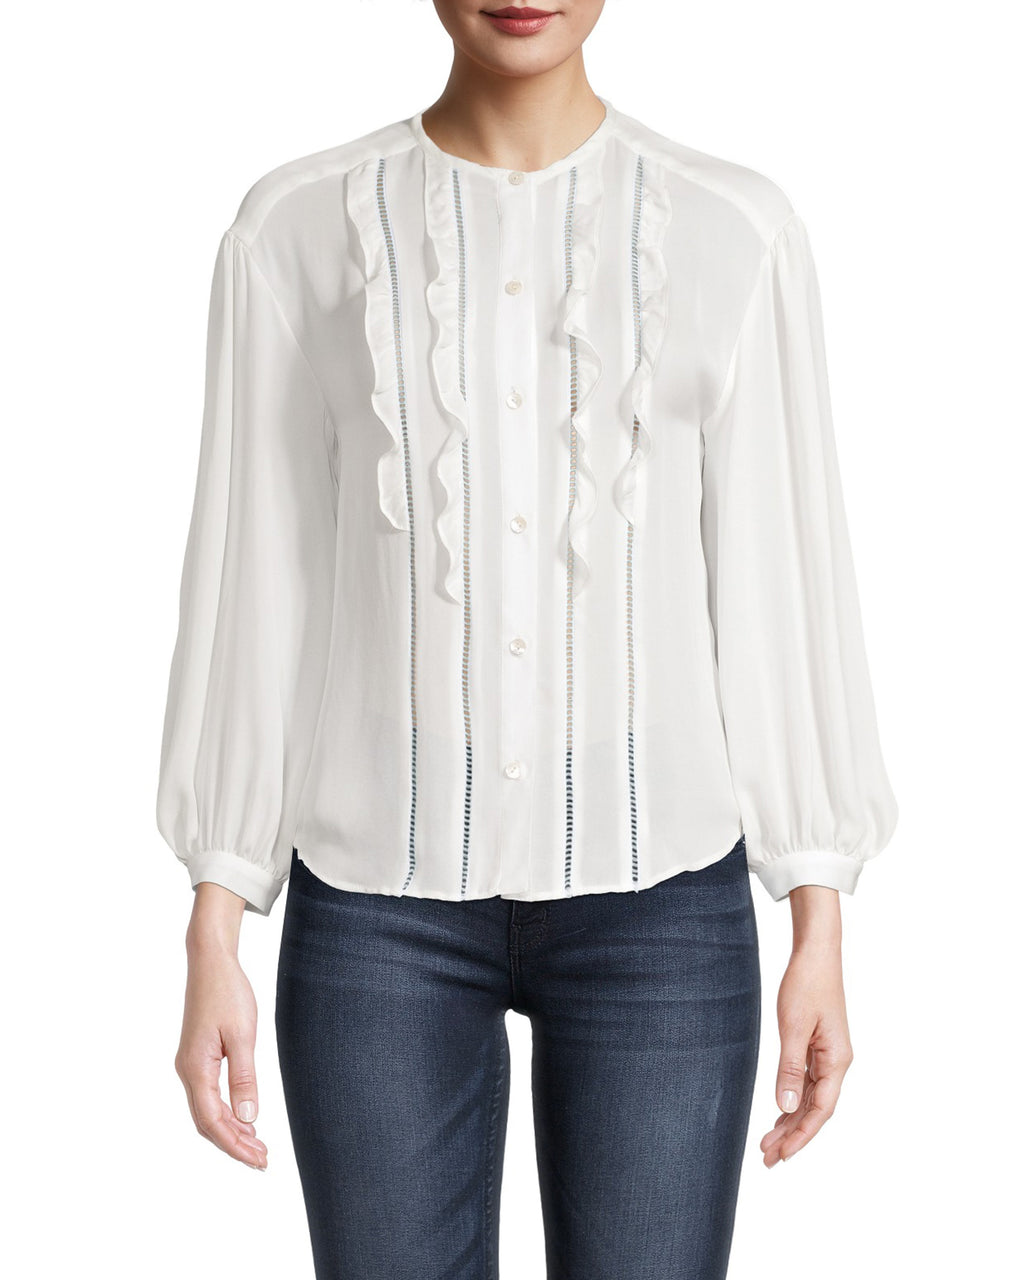 CT18631 - GEORGETTE BUTTON UP RUFFLE BLOUSE - tops - blouses - This Victorian inspired blouse is cut from a lightweight silky georgette fabric for an effortless look. Featuring feminine details like lace trim and ruffles. Add 1 line break Stylist Tip: Pair with one of our printed skirts.